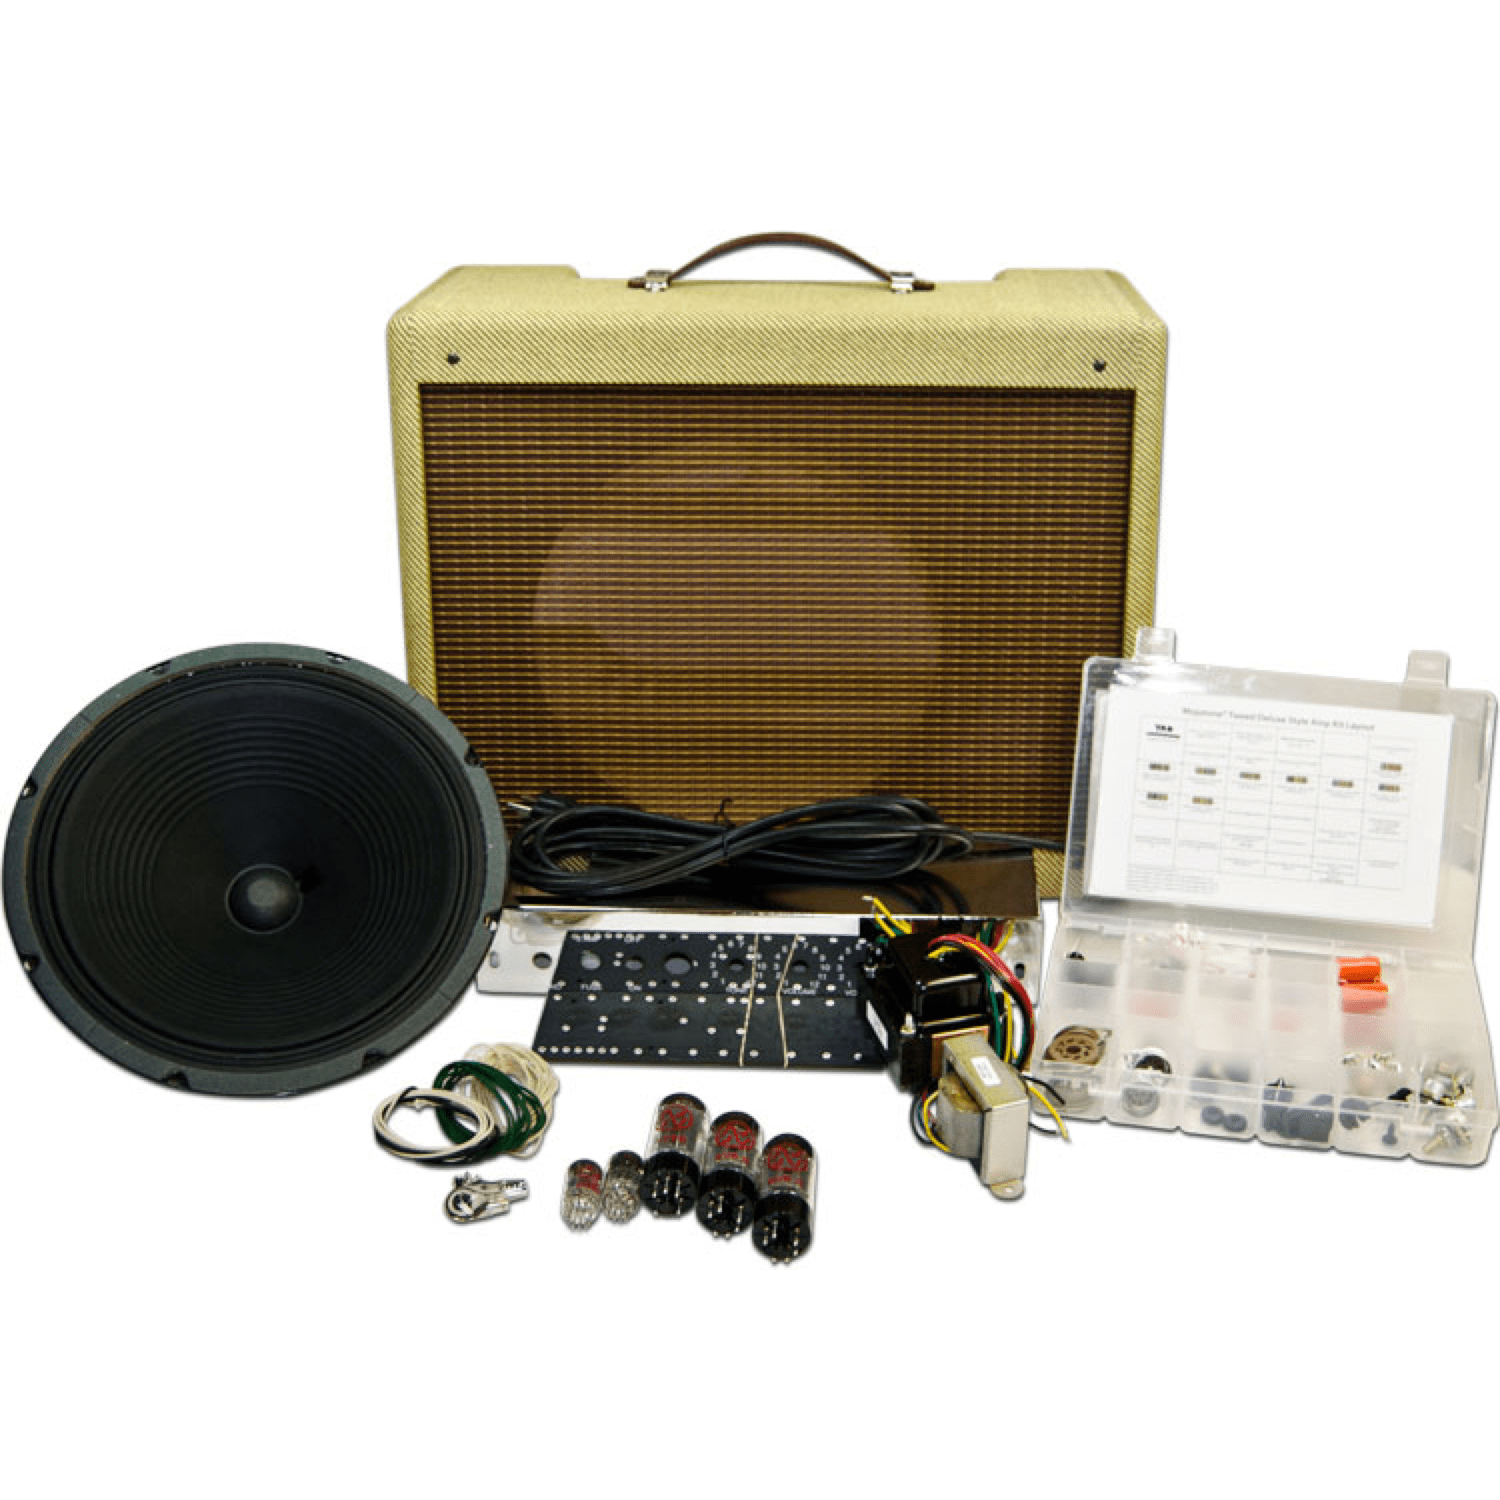 5 diy christmas projects guitarists will love musician tuts the price of diy guitar amps also varies widely depending on the quality of the components and the wattage of the amp you purchase guitar amp kit solutioingenieria Images